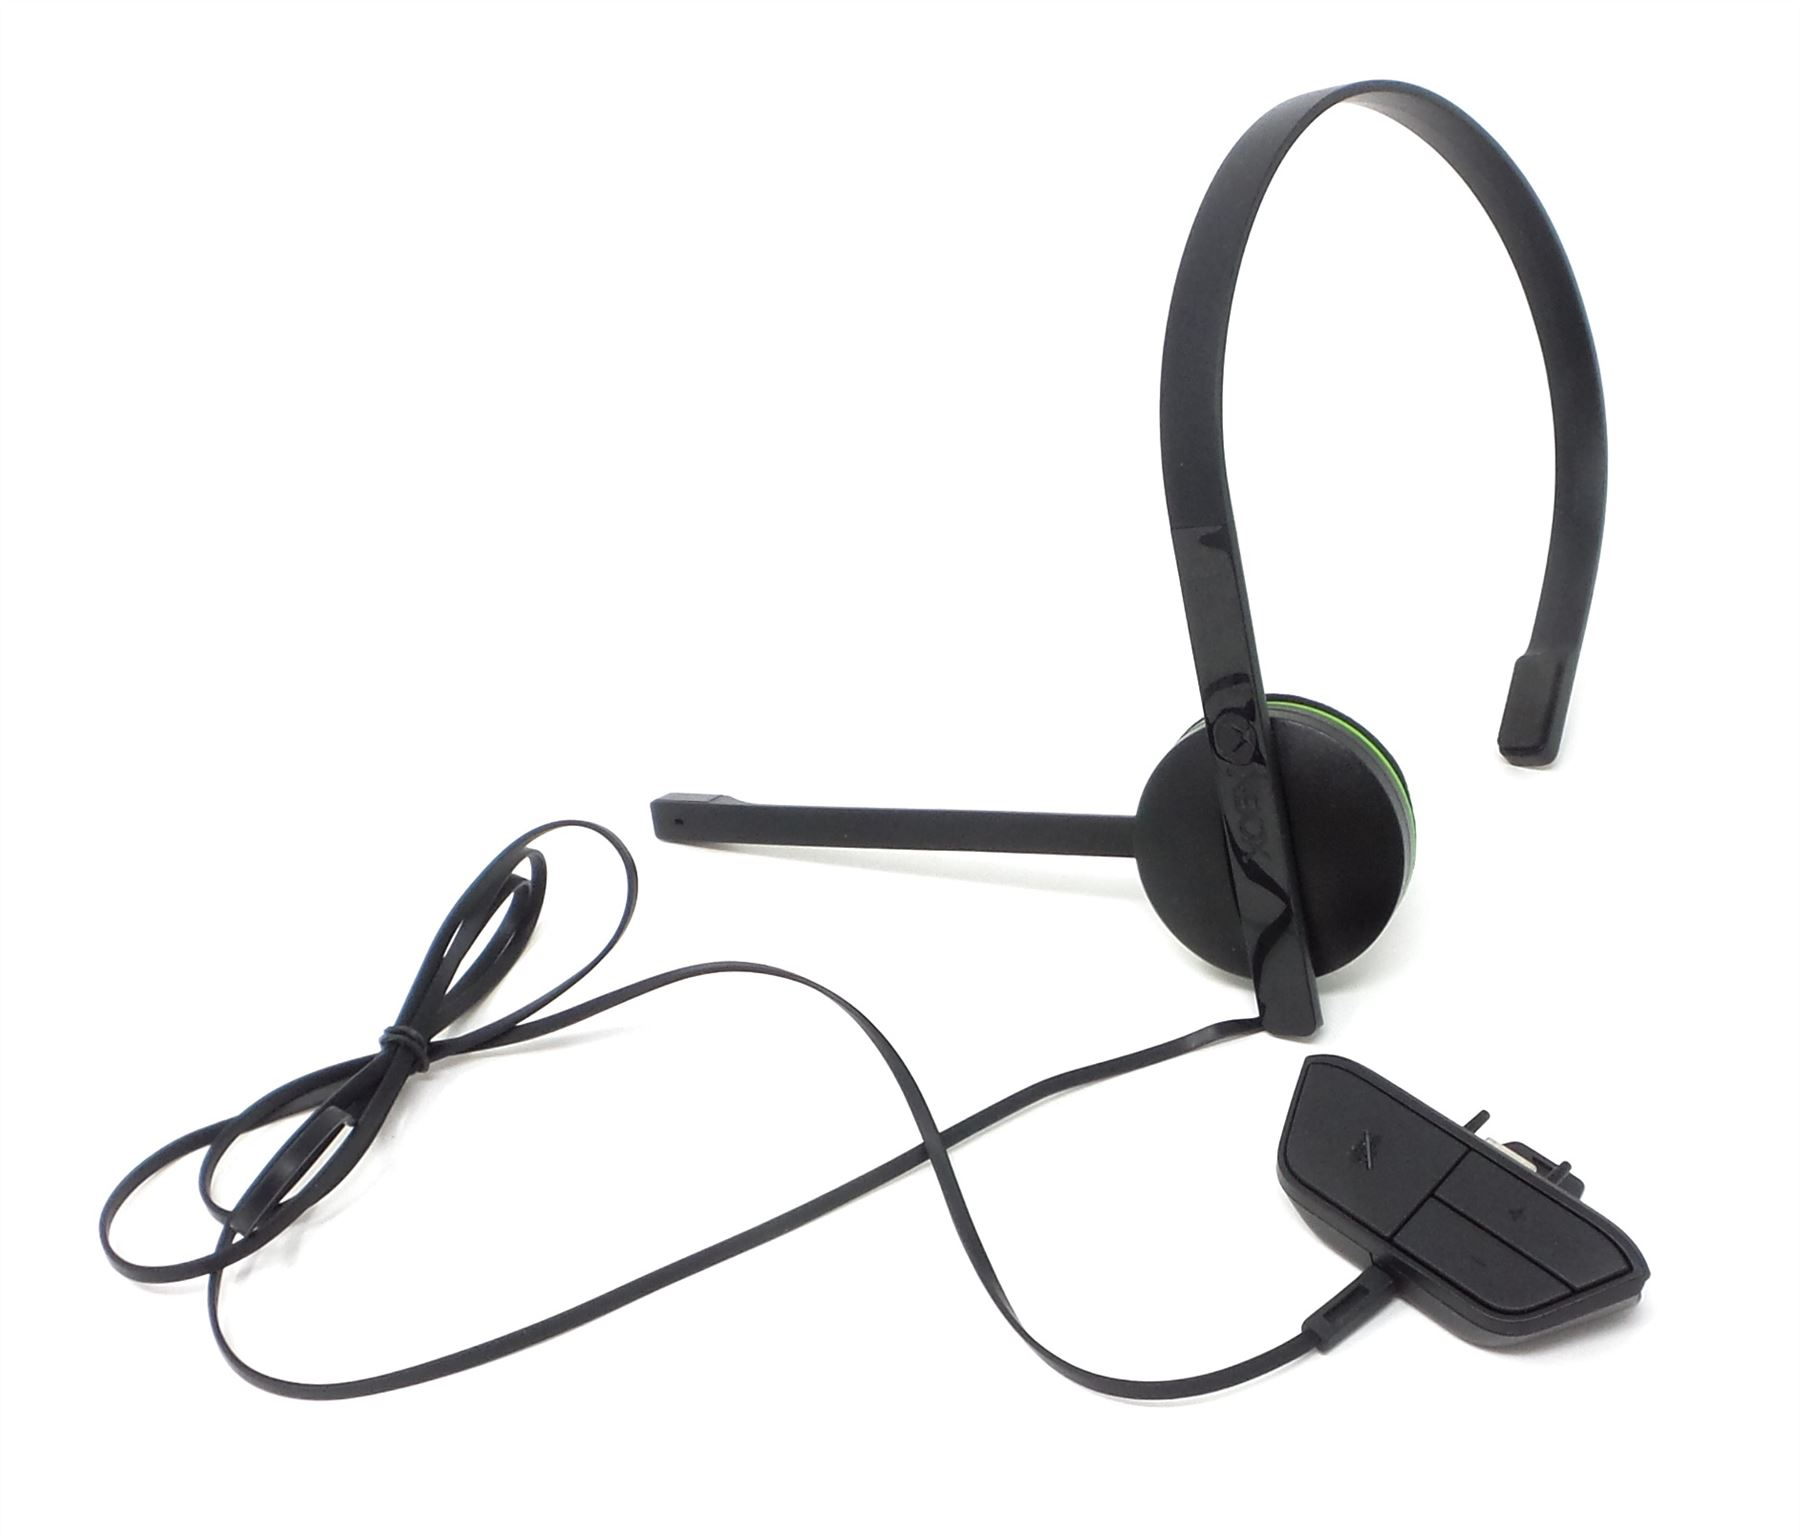 Microsoft Xbox One Chat Headset Wired Mono Volume Control Mic S5V-00014  Black